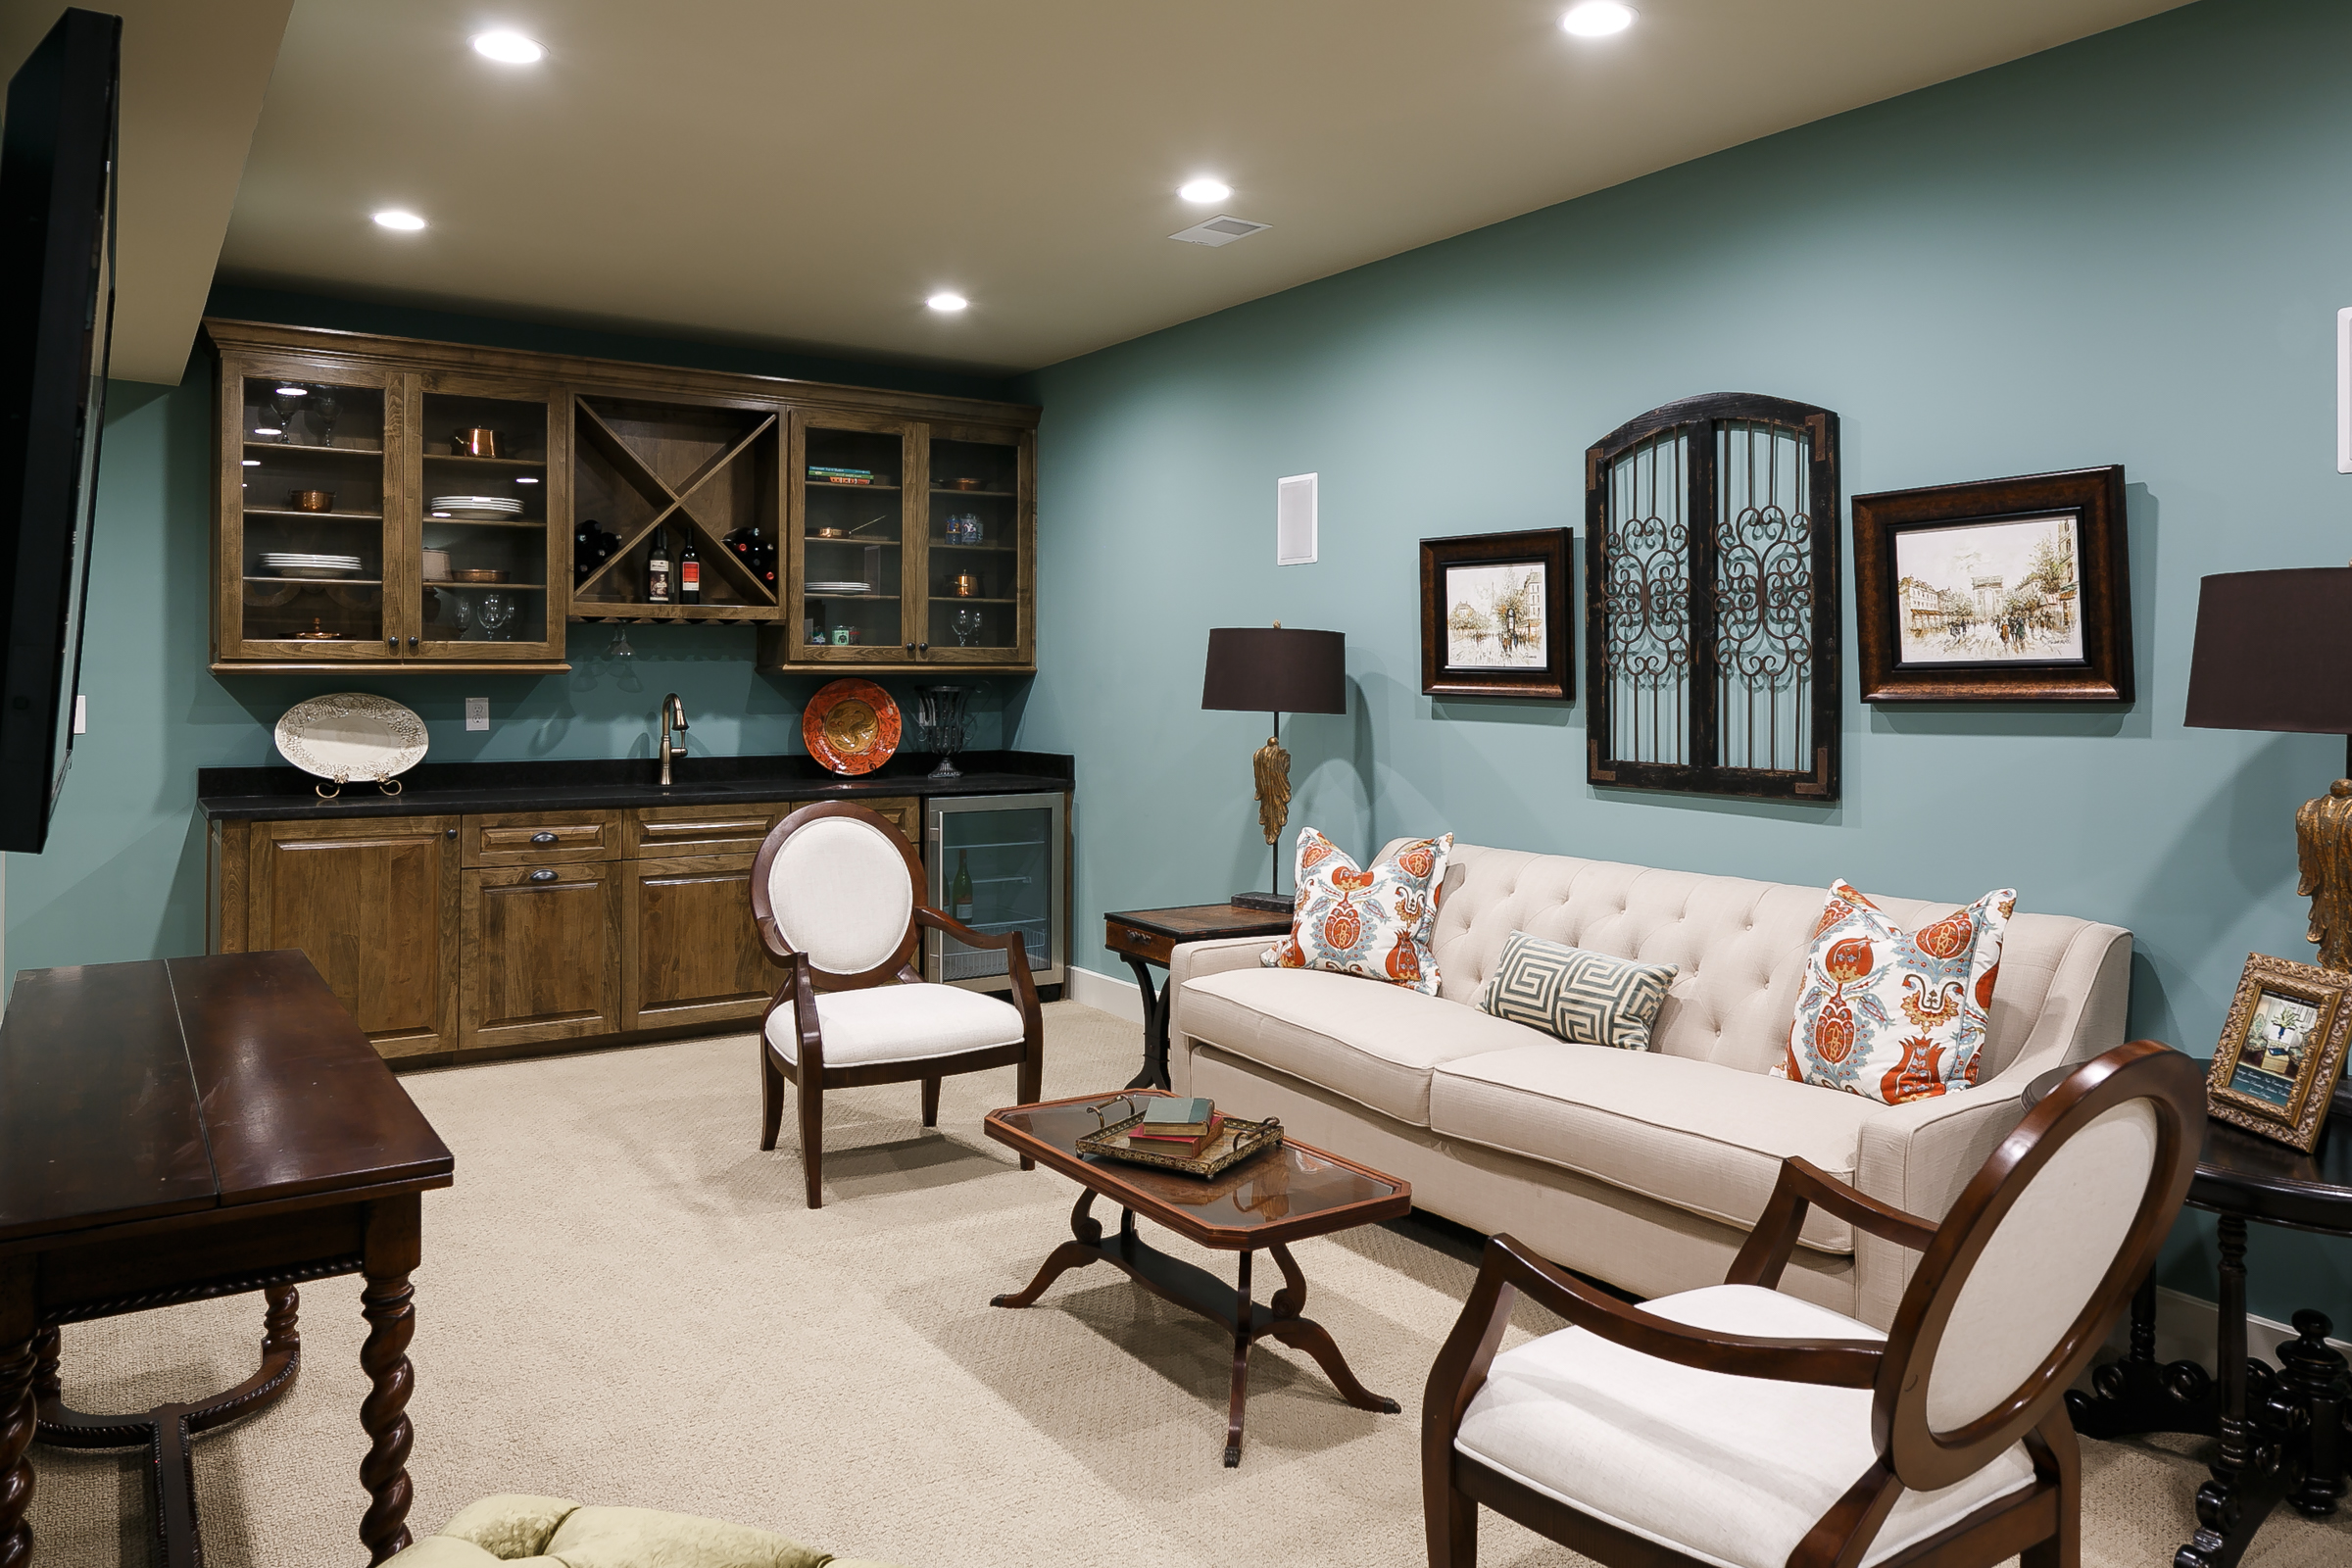 Tim Furlong Jr. _ Southern Inspirations _ Homearama 2016 (54 of 58).jpg